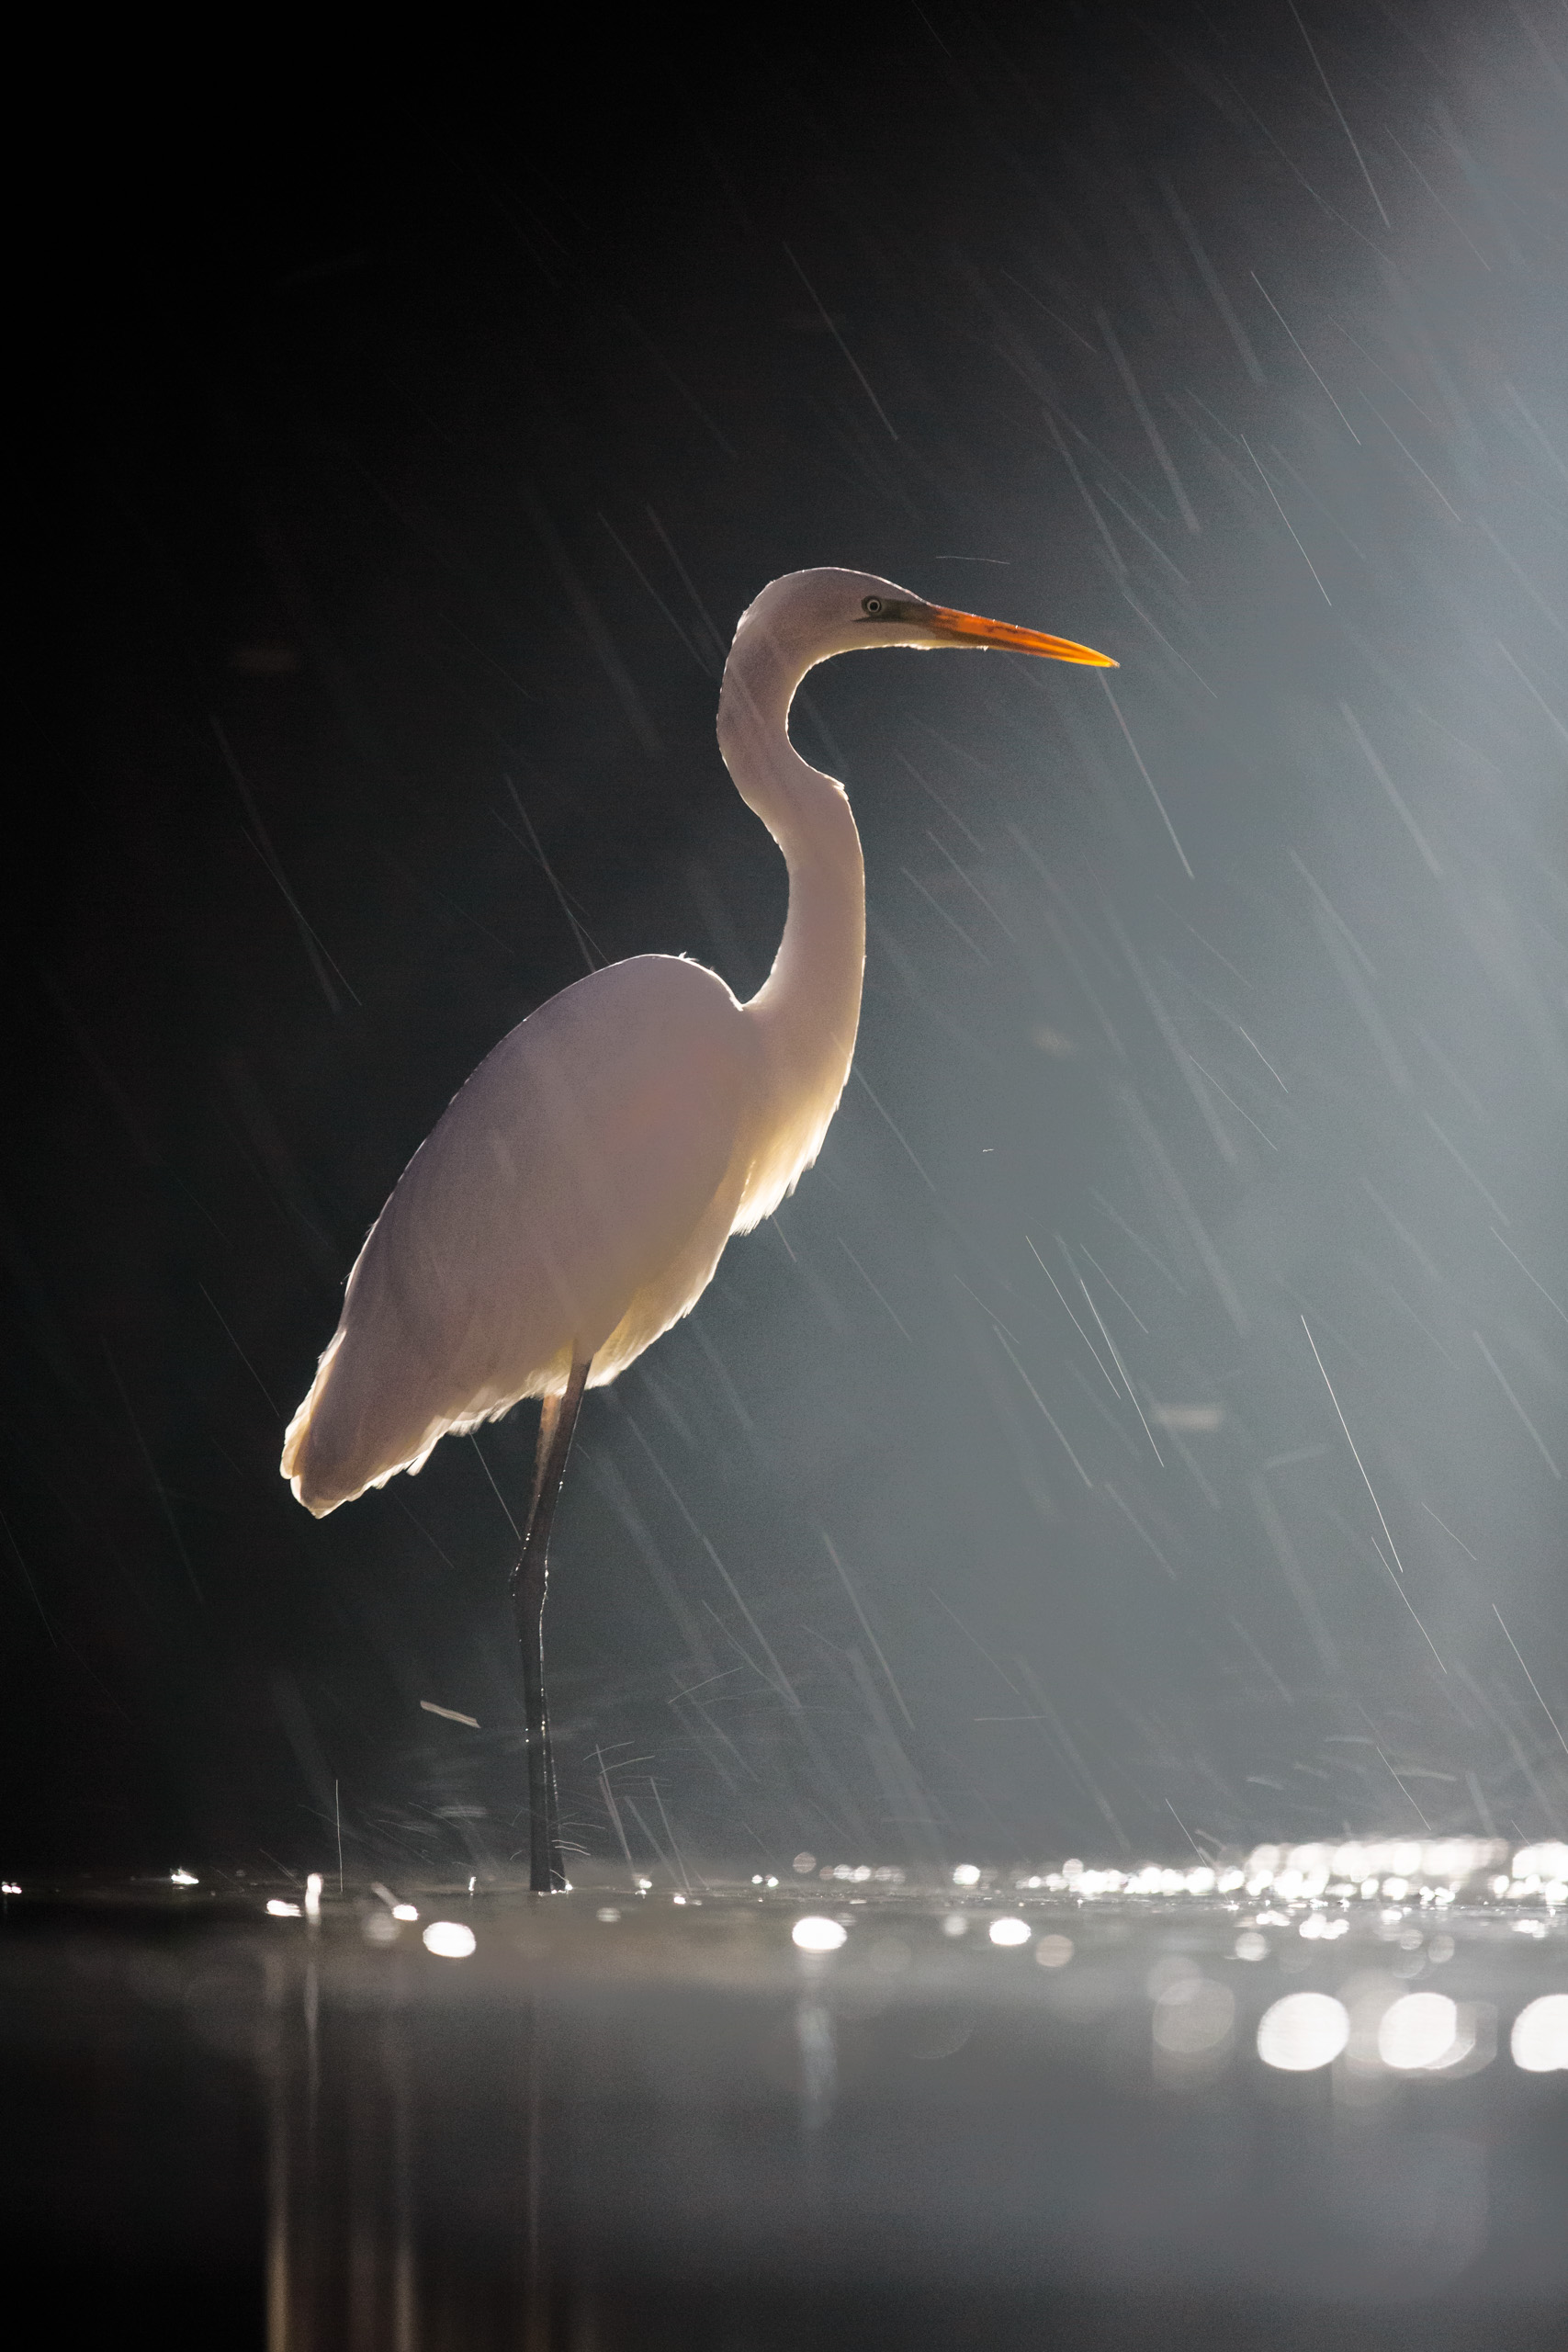 Image 05: Great Egret at night backlit with a 1000W spotlight to give continuous light. This allows us to capture rain streaks using a slow shutter speed (1/80 sec) which wouldn't be possible if we'd used a flash instead.